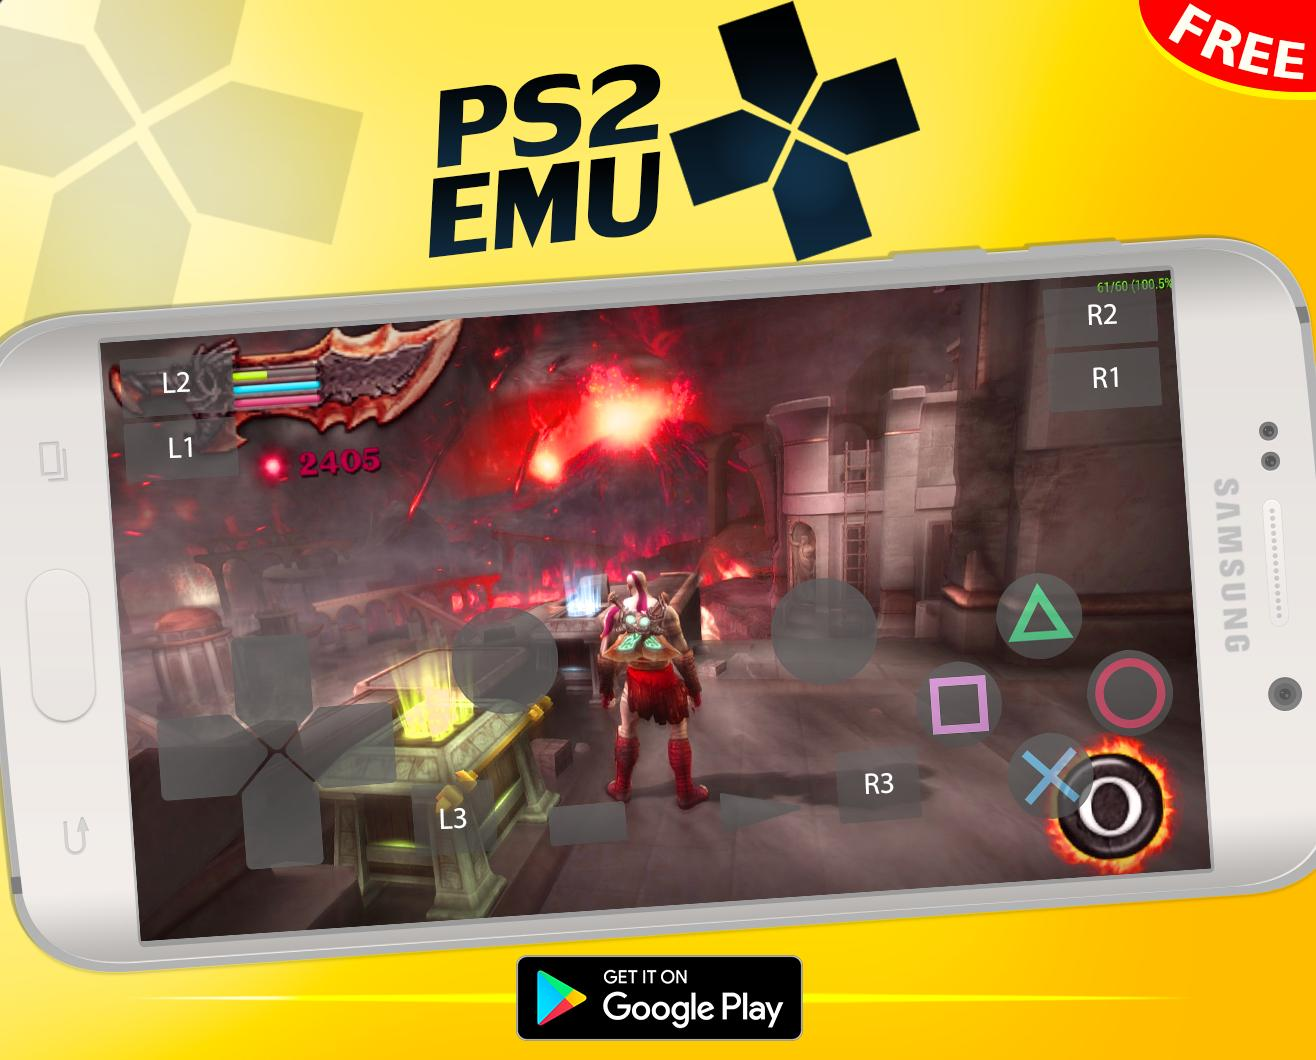 New PS2 Emulator (Play PS2 Games) for Android - APK Download